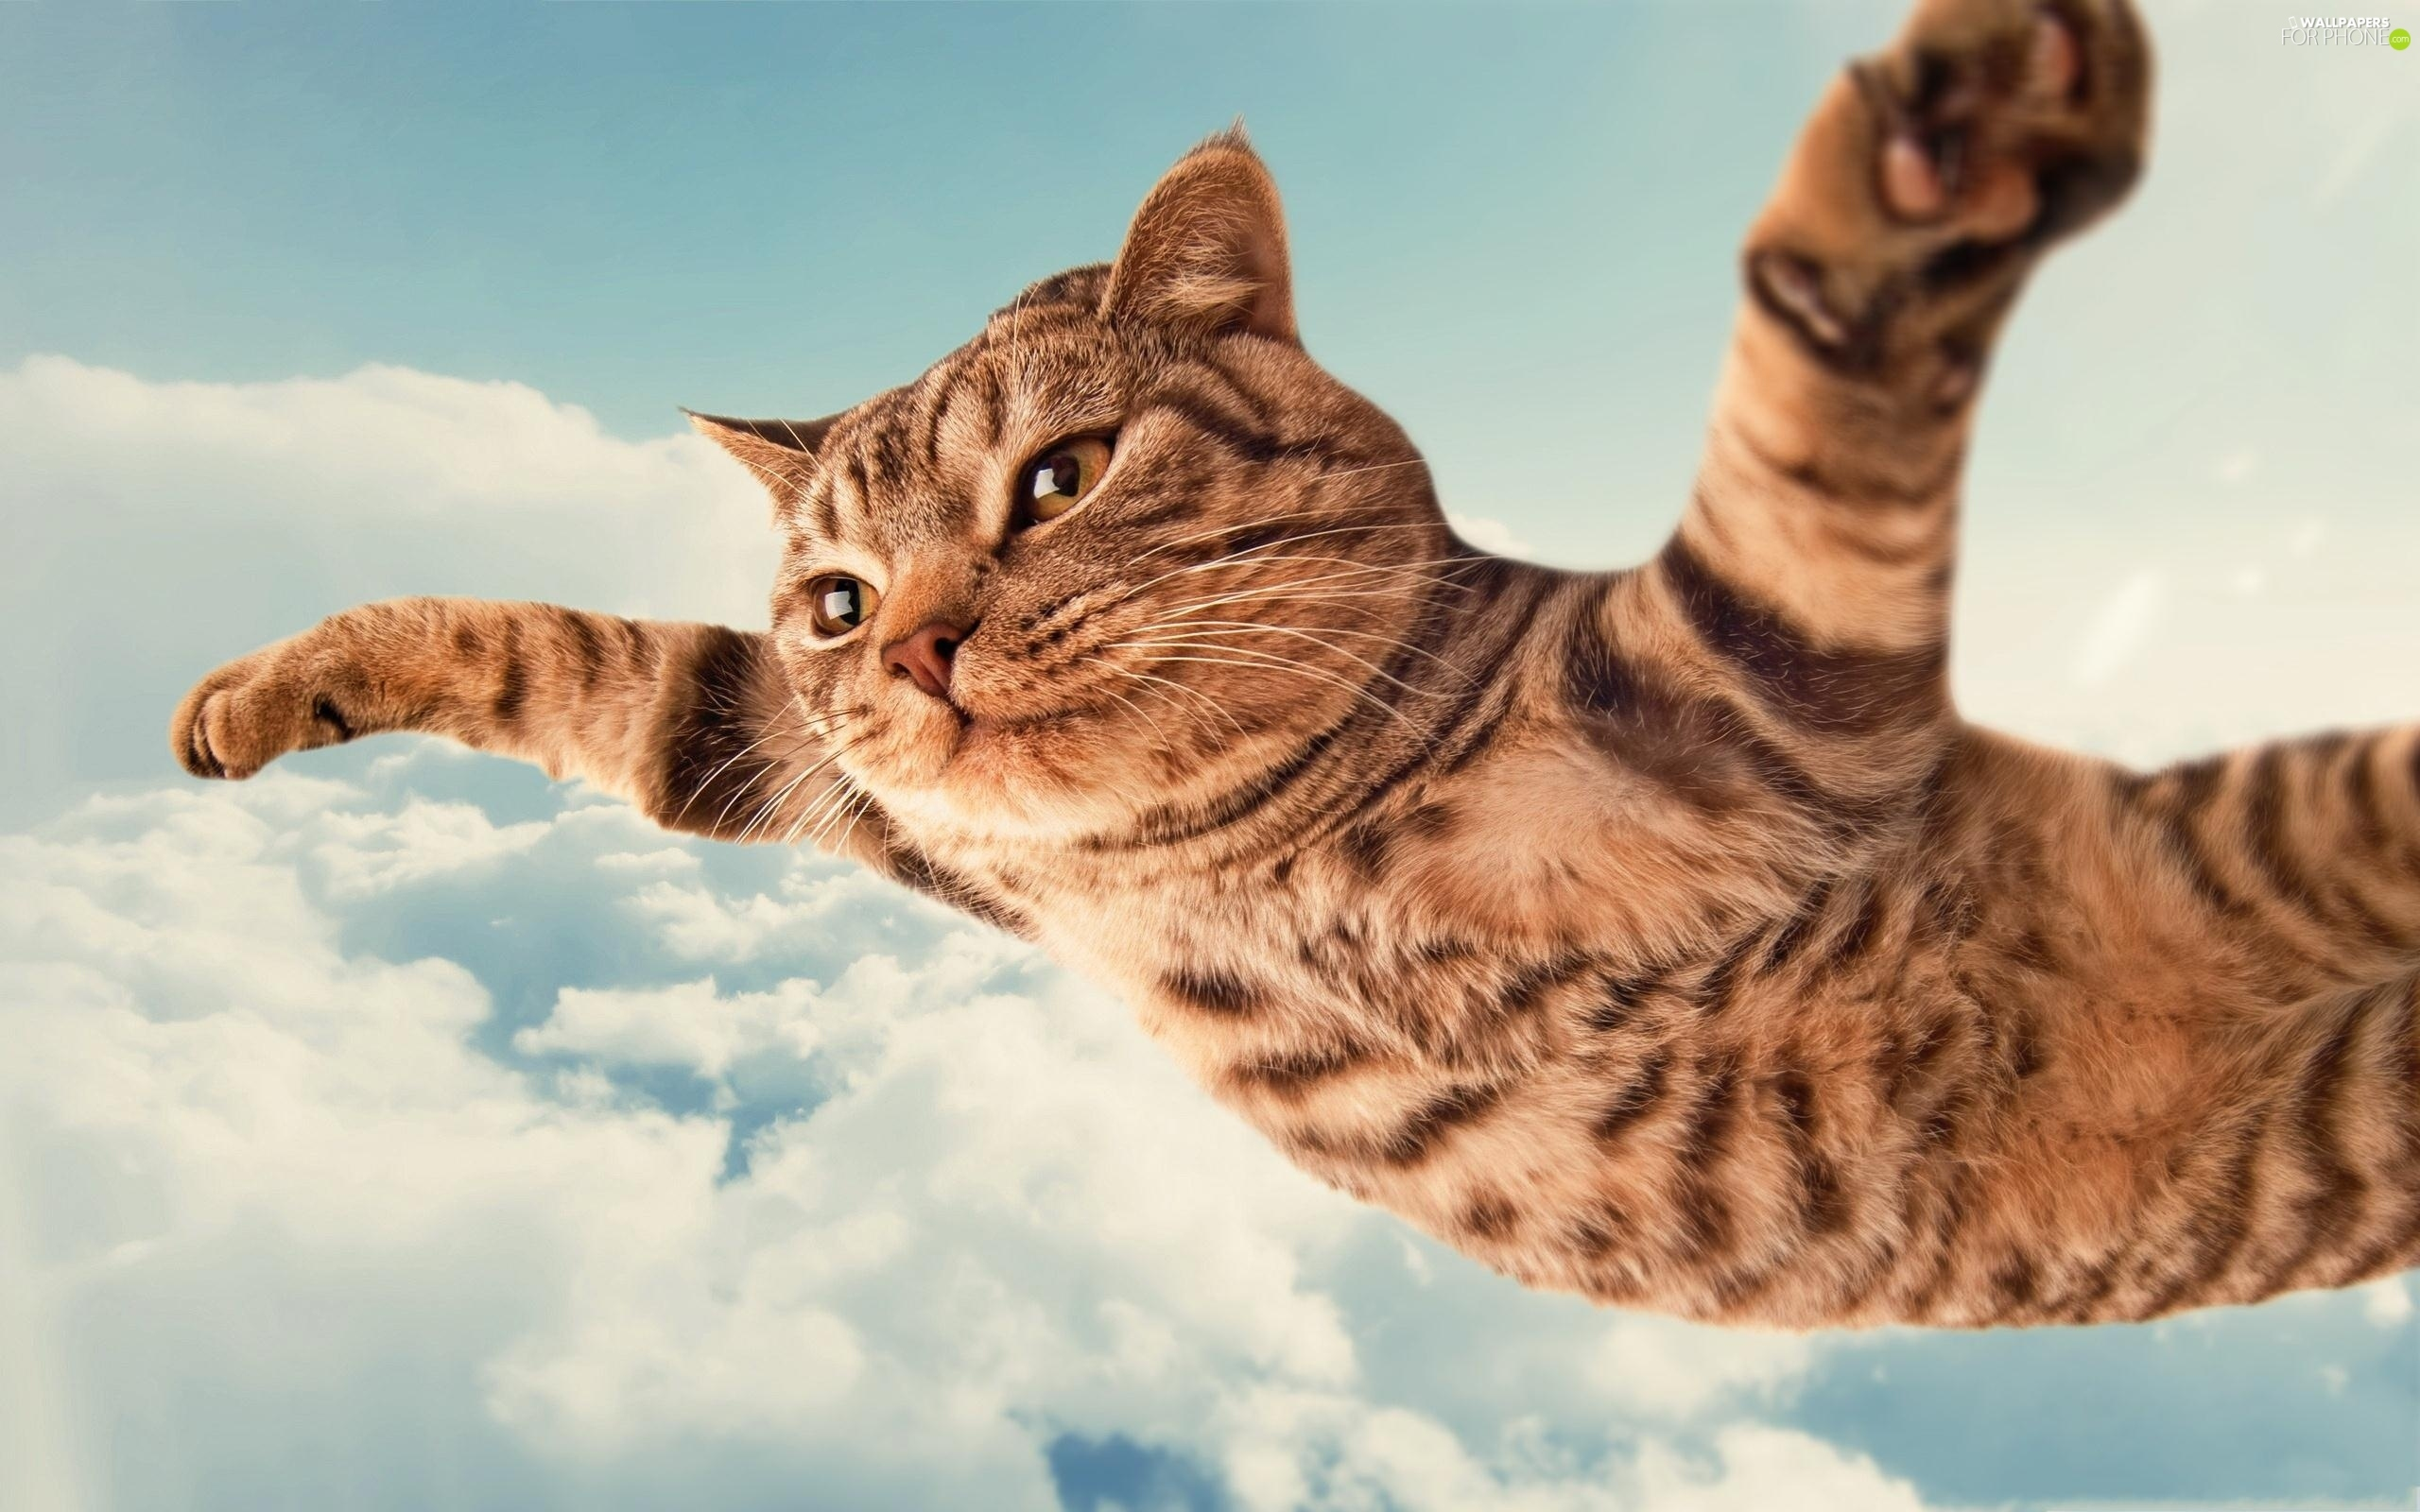 flying, clouds, Funny, cat